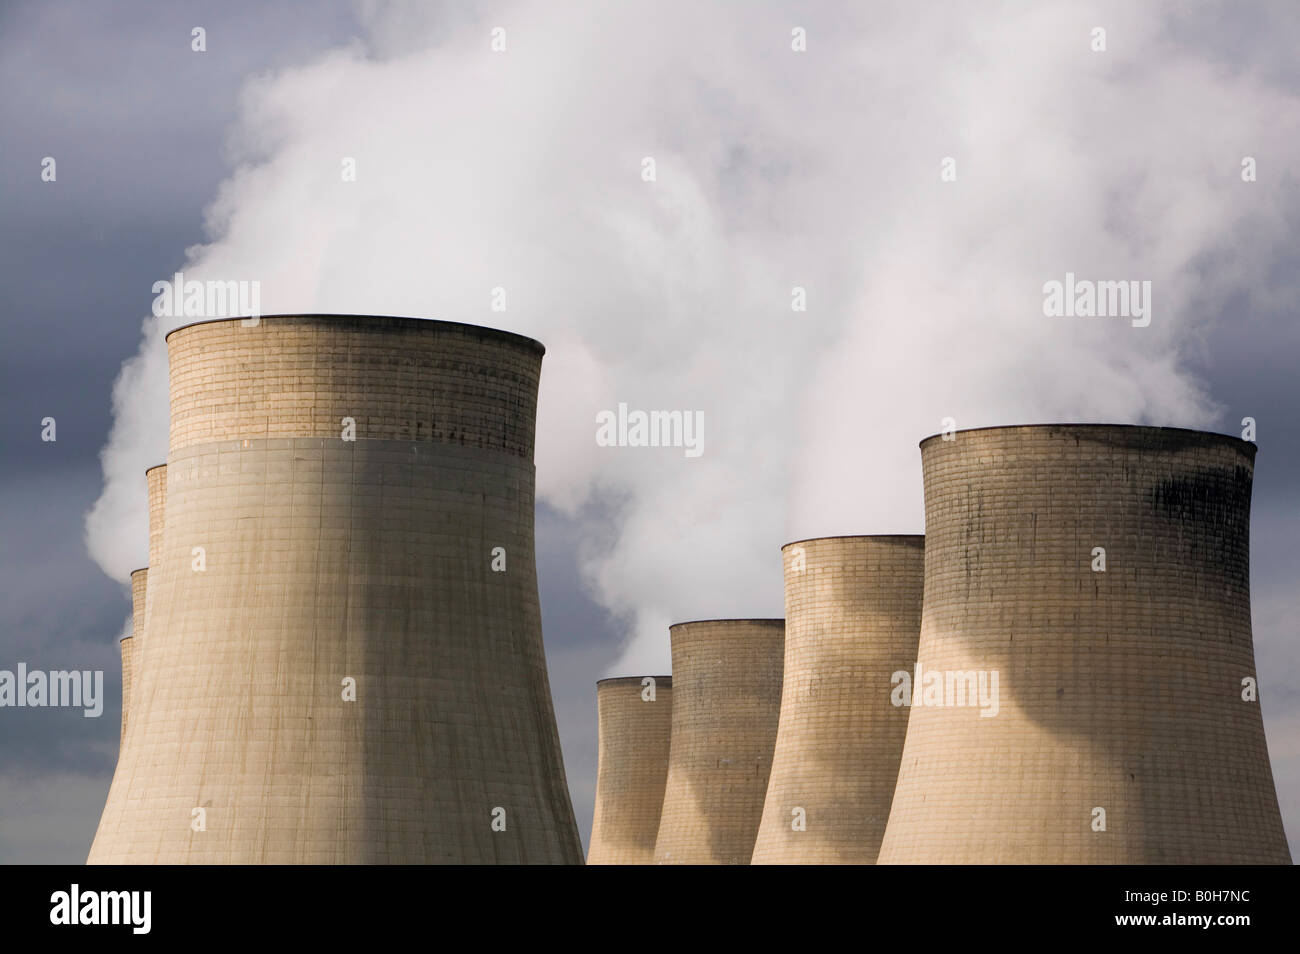 Ratcliffe on Soar a massive coal powered power station in Nottinghamshire UK - Stock Image